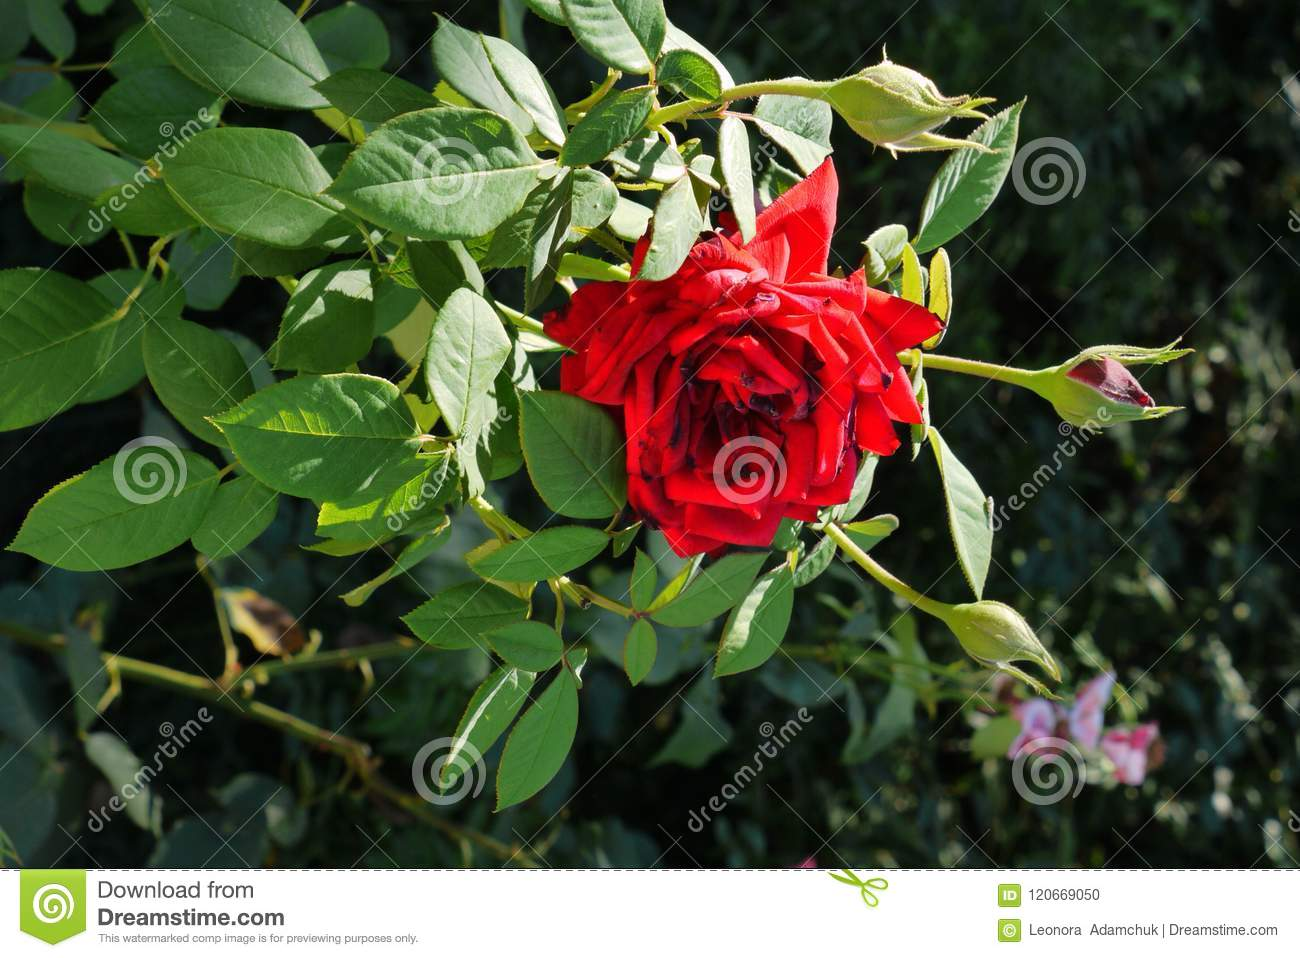 A beautiful rose flower with red petals with a green stem with a beautiful rose flower with red petals with a green stem with spiked thorns will be izmirmasajfo